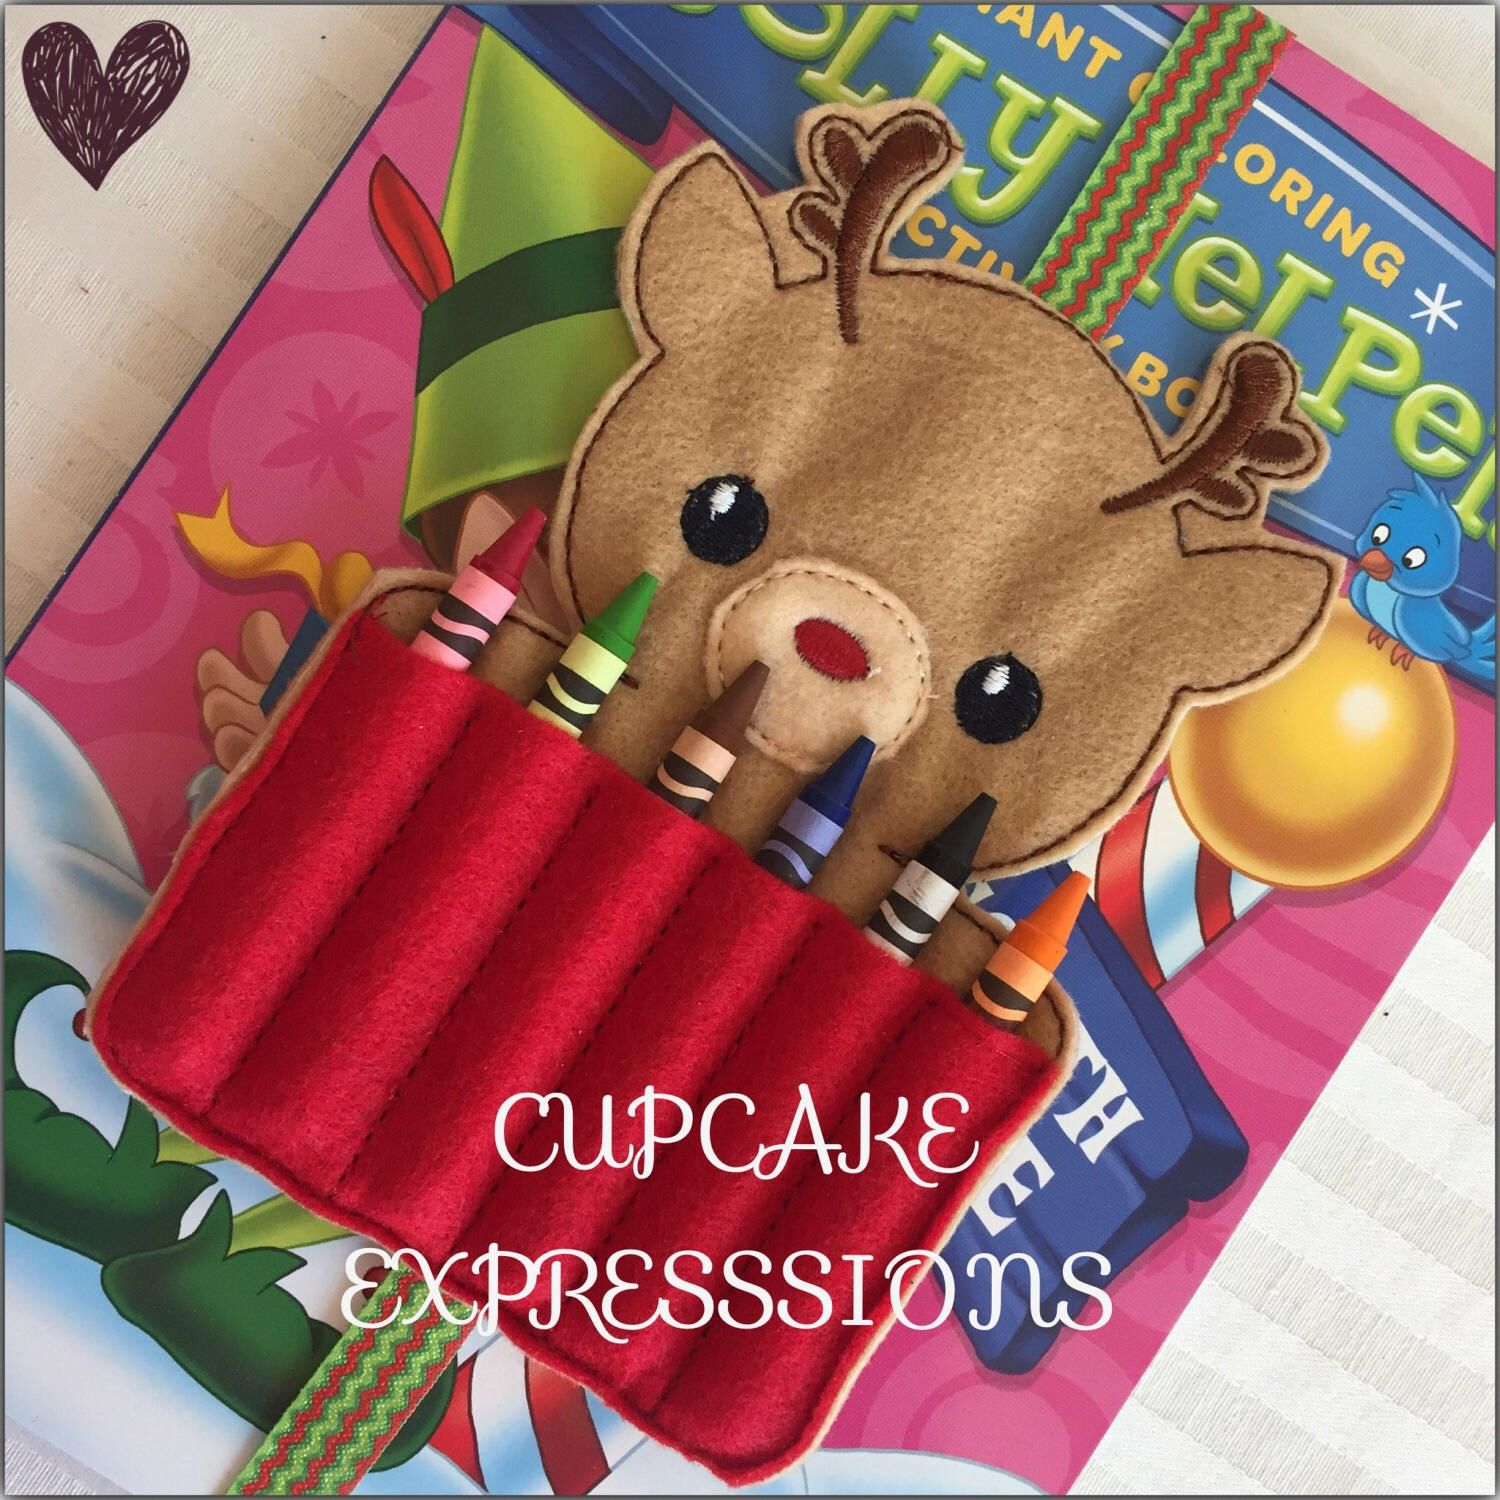 homemade coloring book crayon holder reindeer quiet time play toy christmas holiday present santa clause - Coloring Book And Crayon Holder